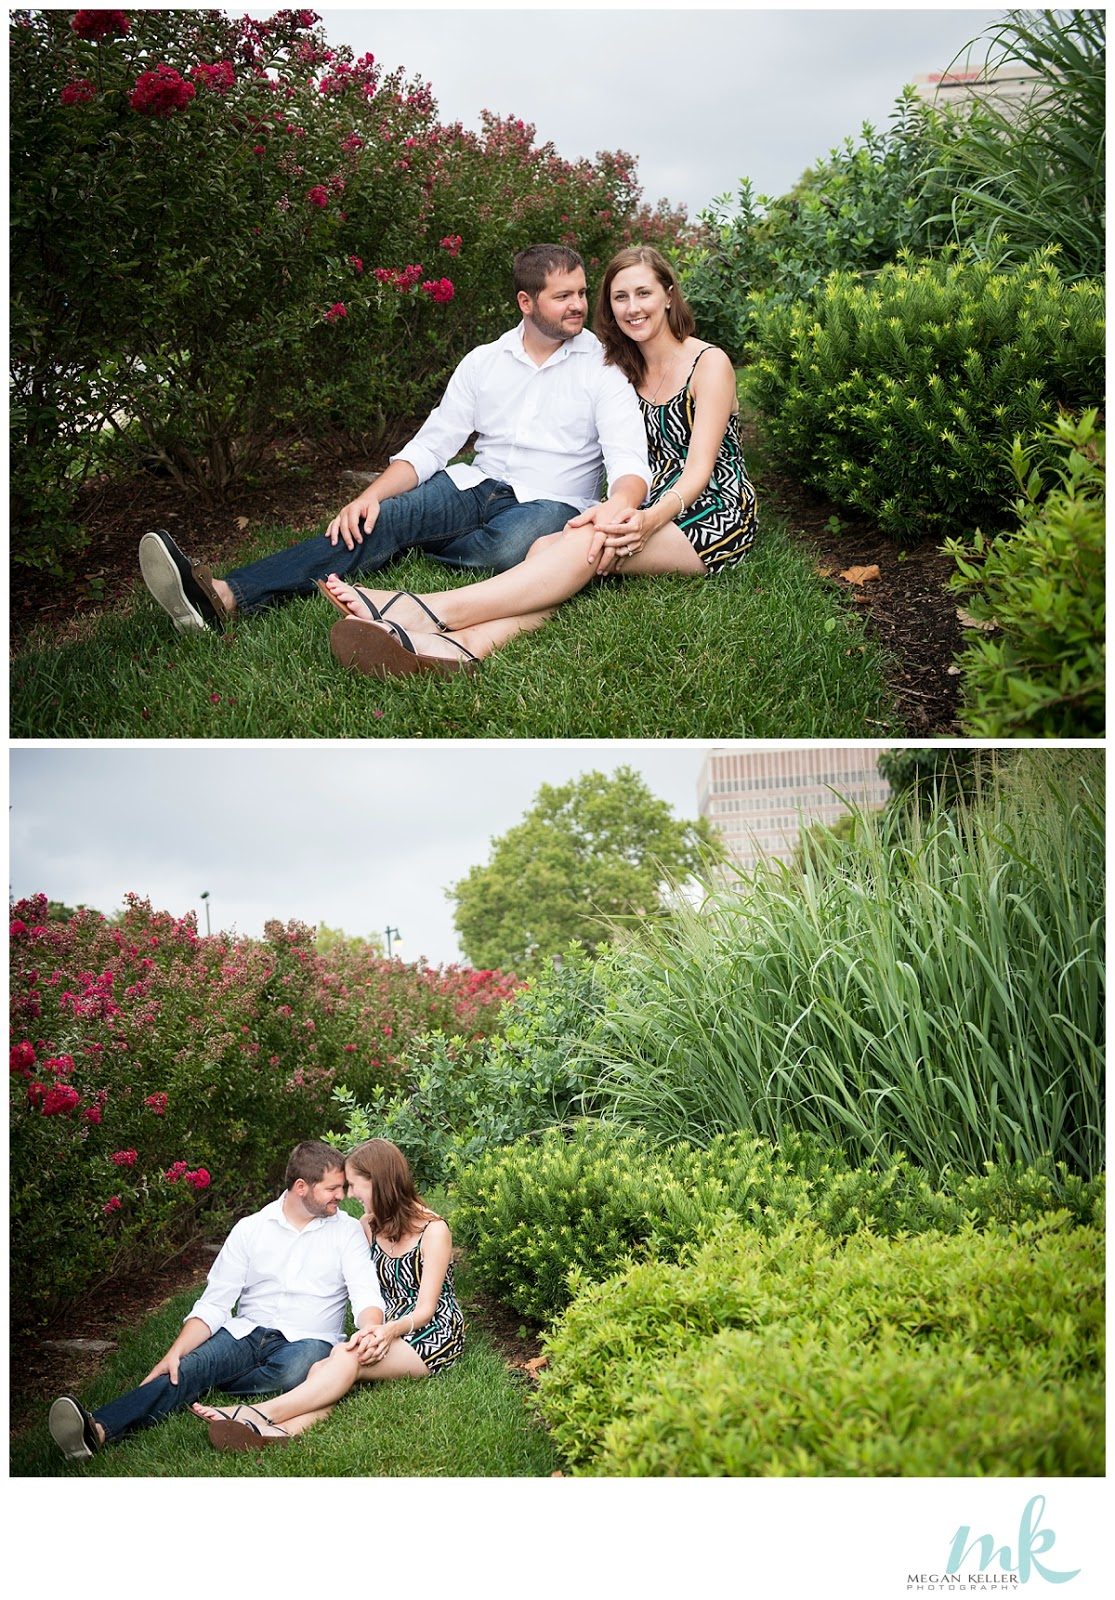 Kelly and Frank Engagement Session Kelly and Frank Engagement Session 2014 08 04 0006